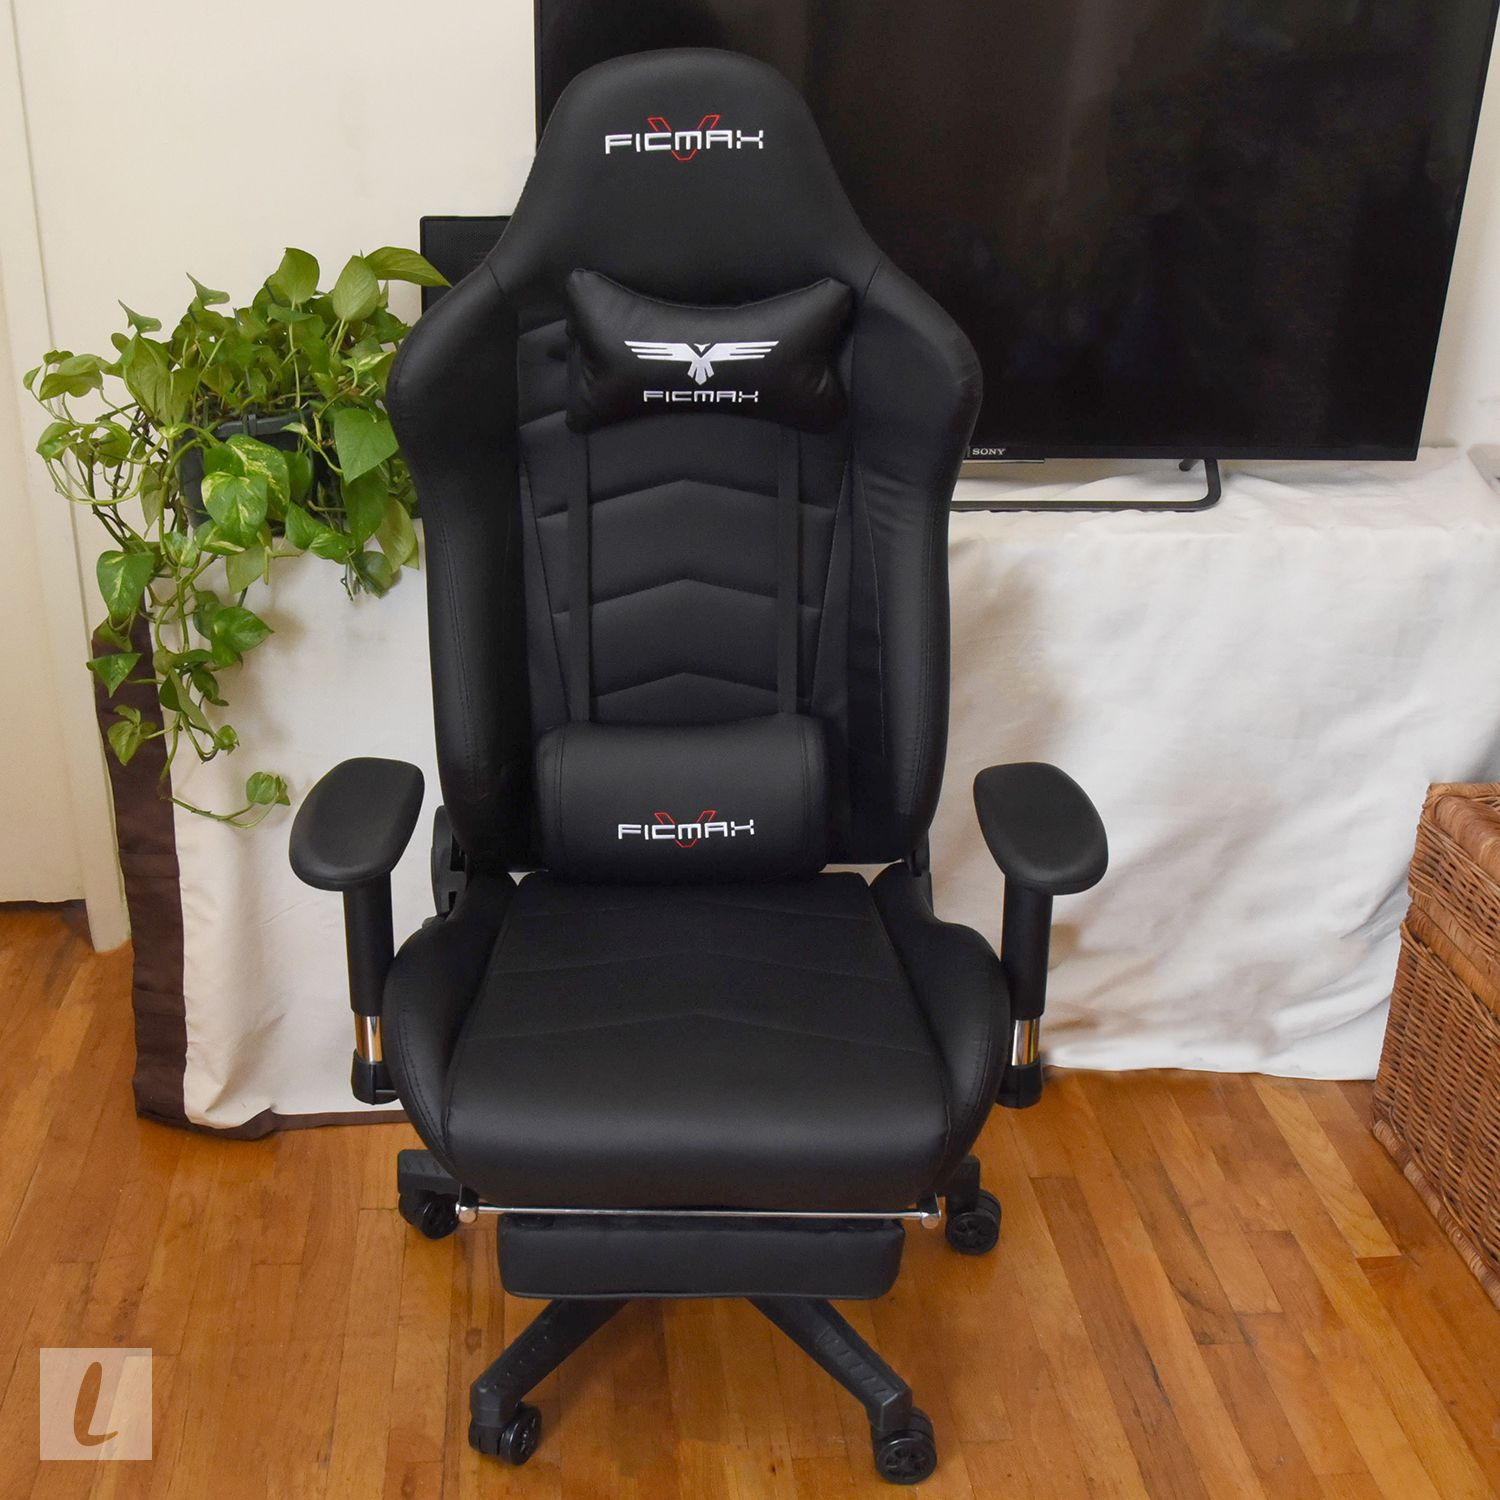 Ficmax Ergonomic Gaming Chair Review: The Most Comfortable Gaming